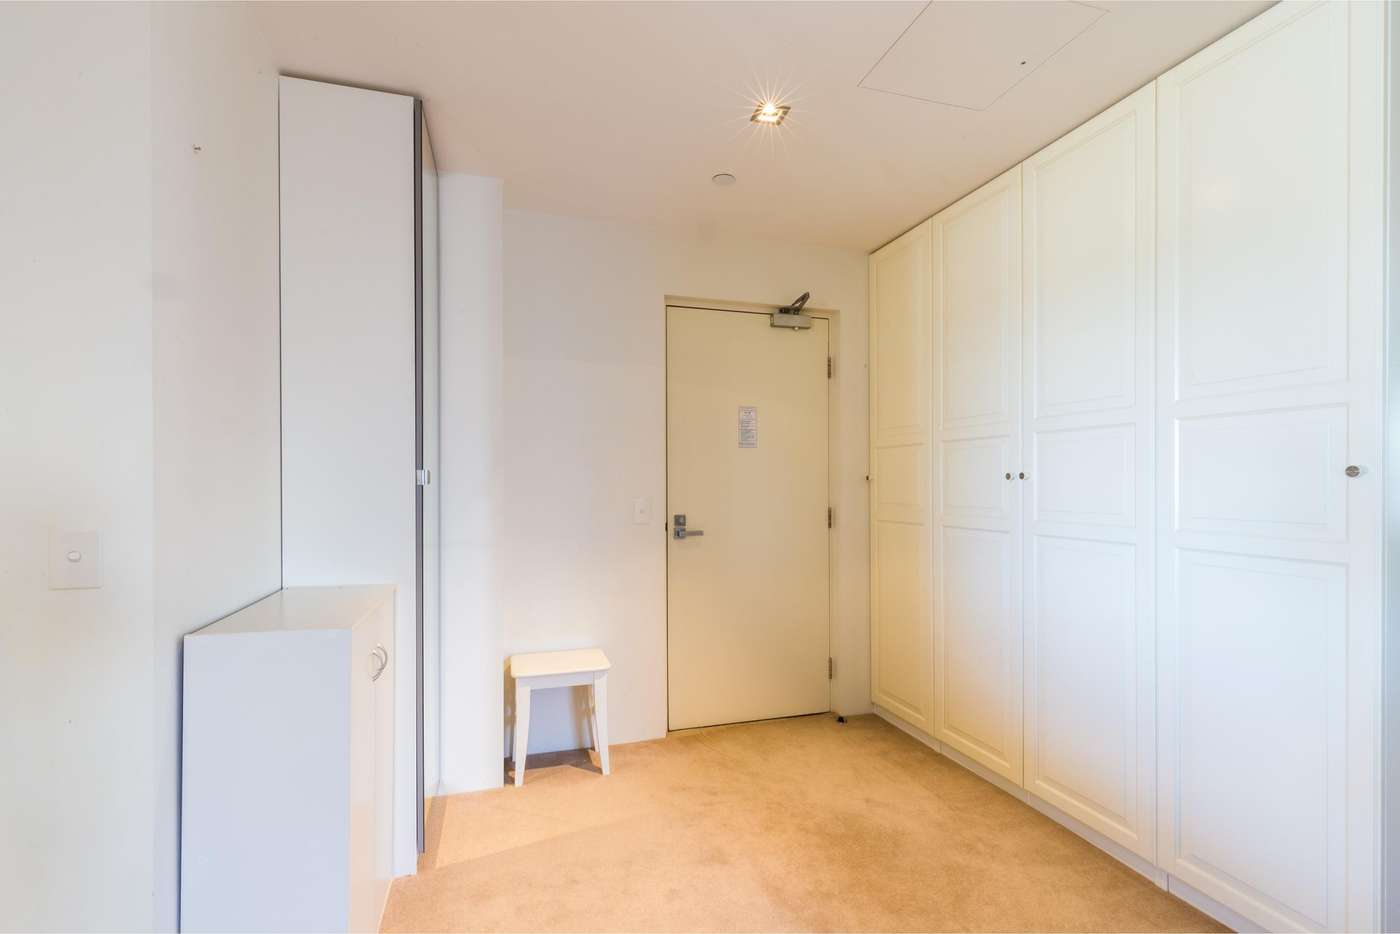 Fifth view of Homely apartment listing, 704/237 Adelaide Terrace, Perth WA 6000